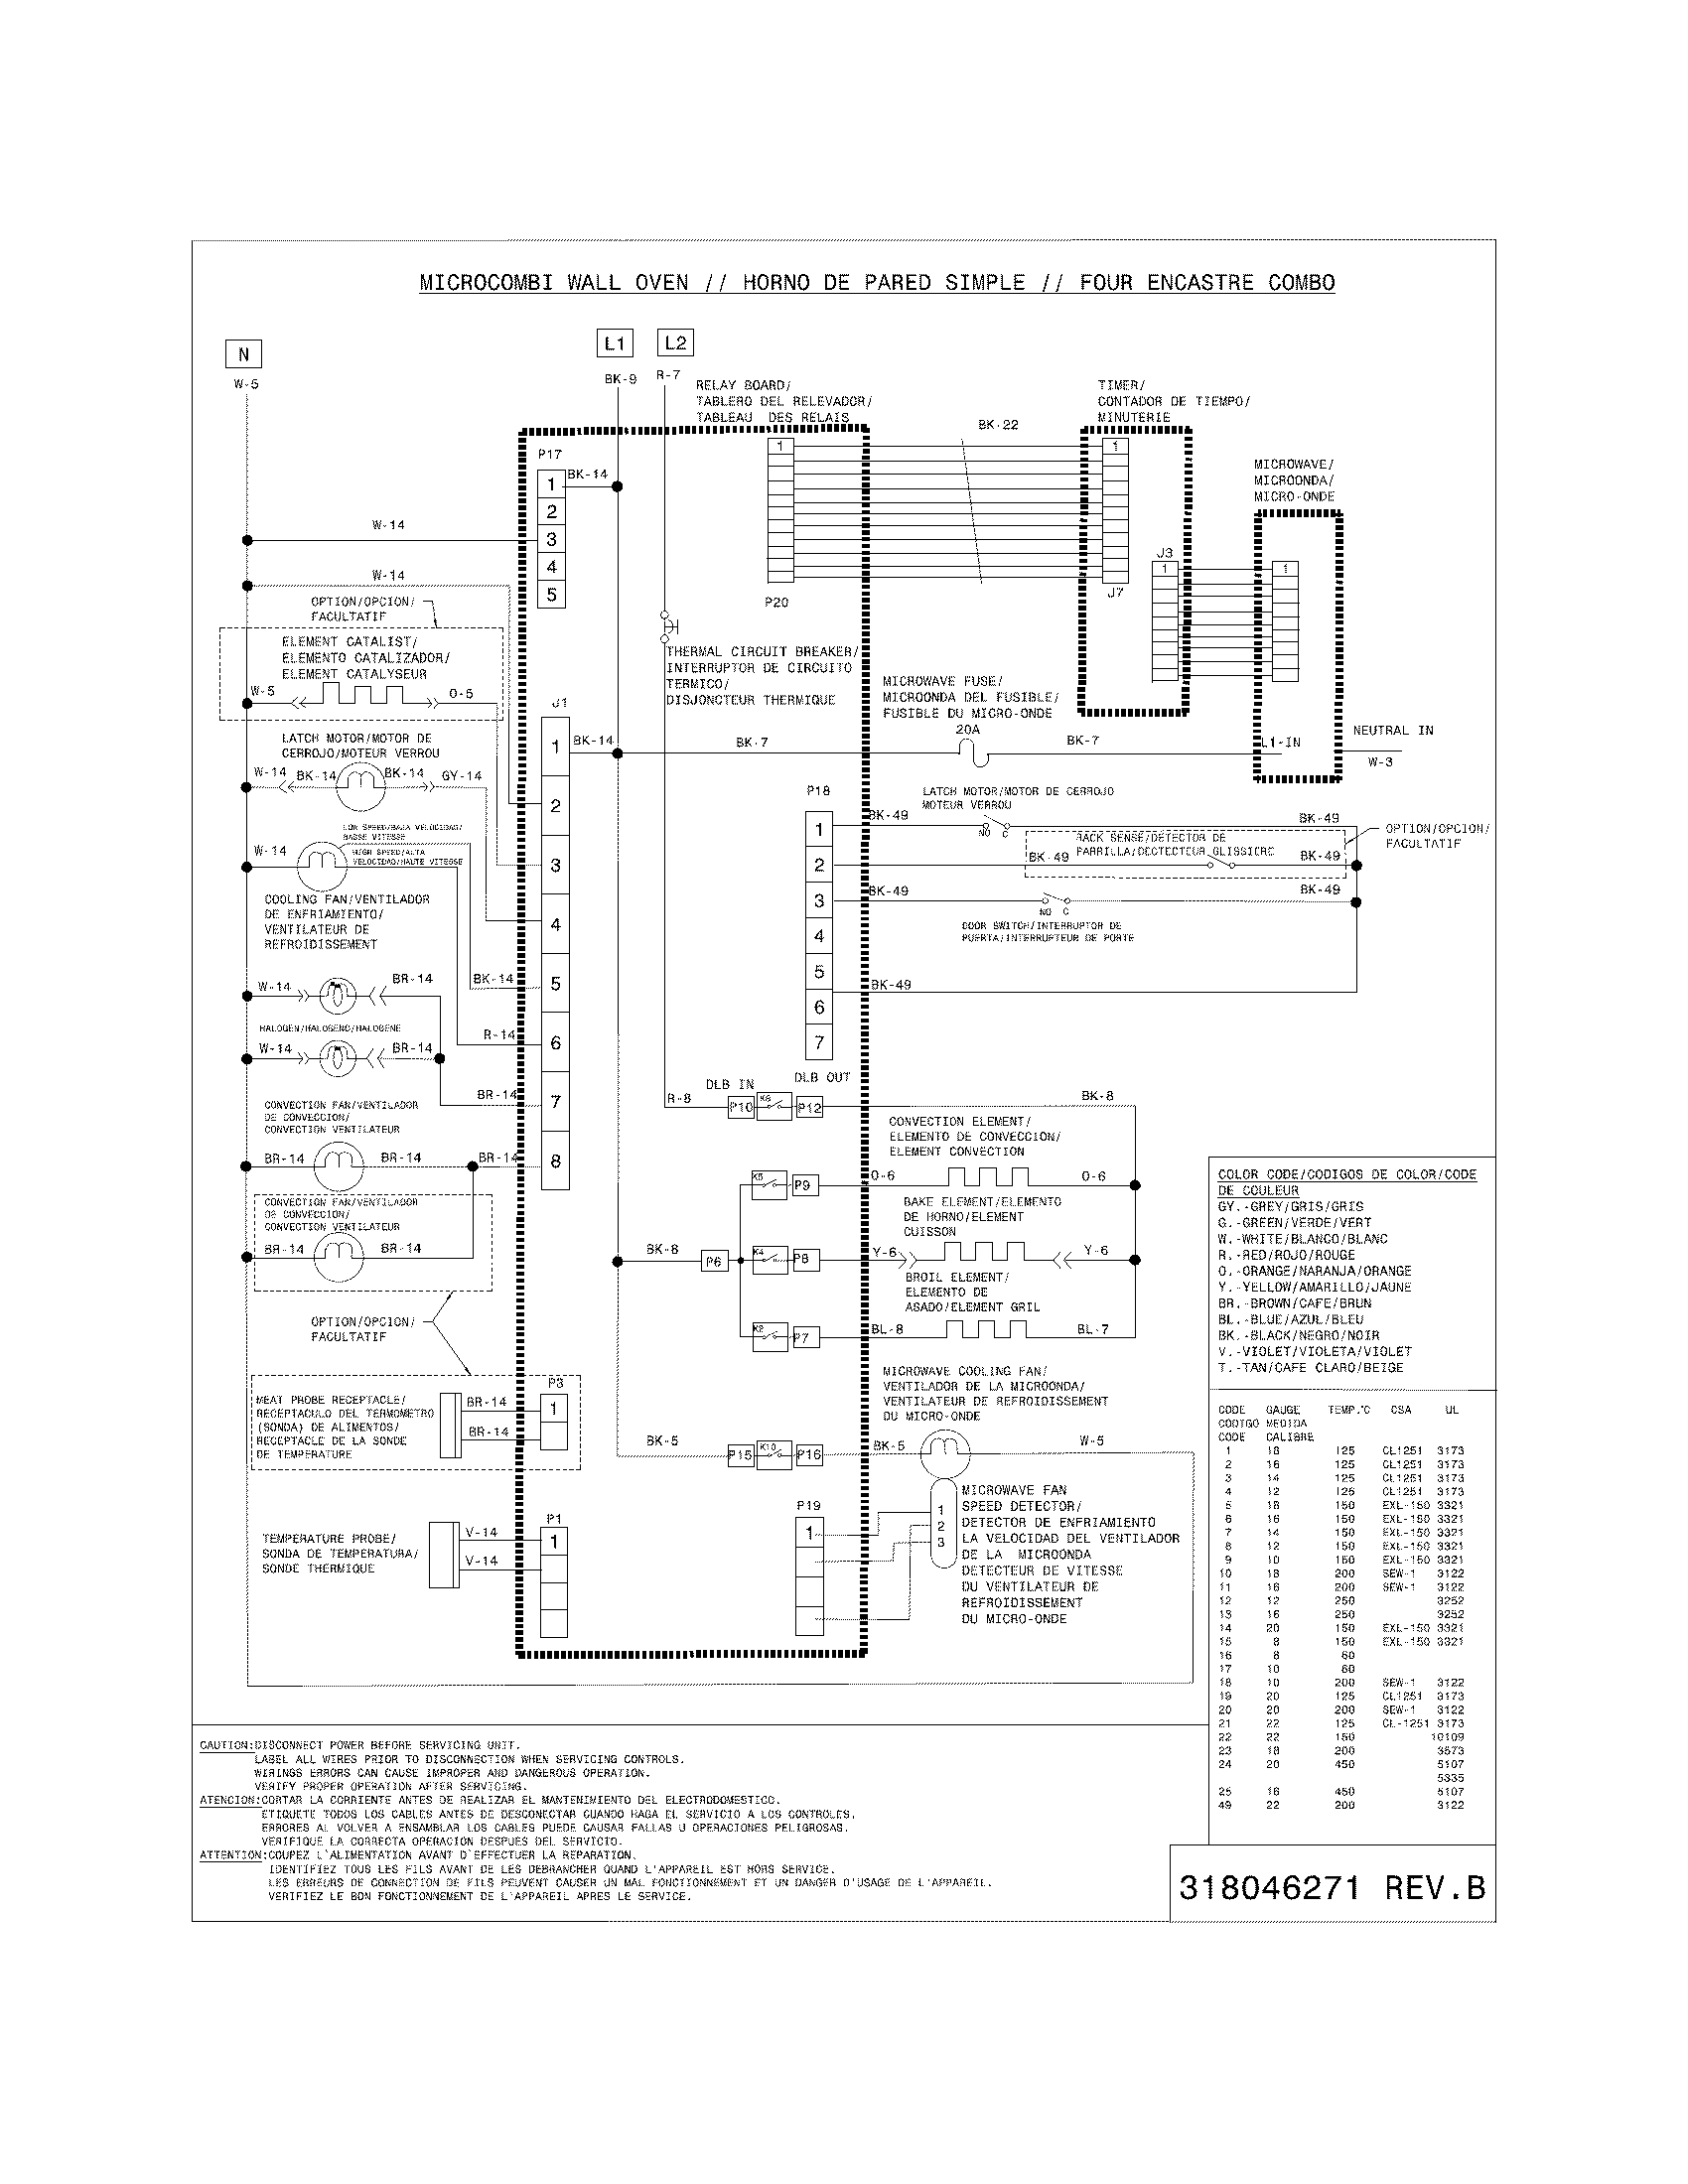 Citroen Relay Fuse Box Diagram Wiring Schemes. Citroen